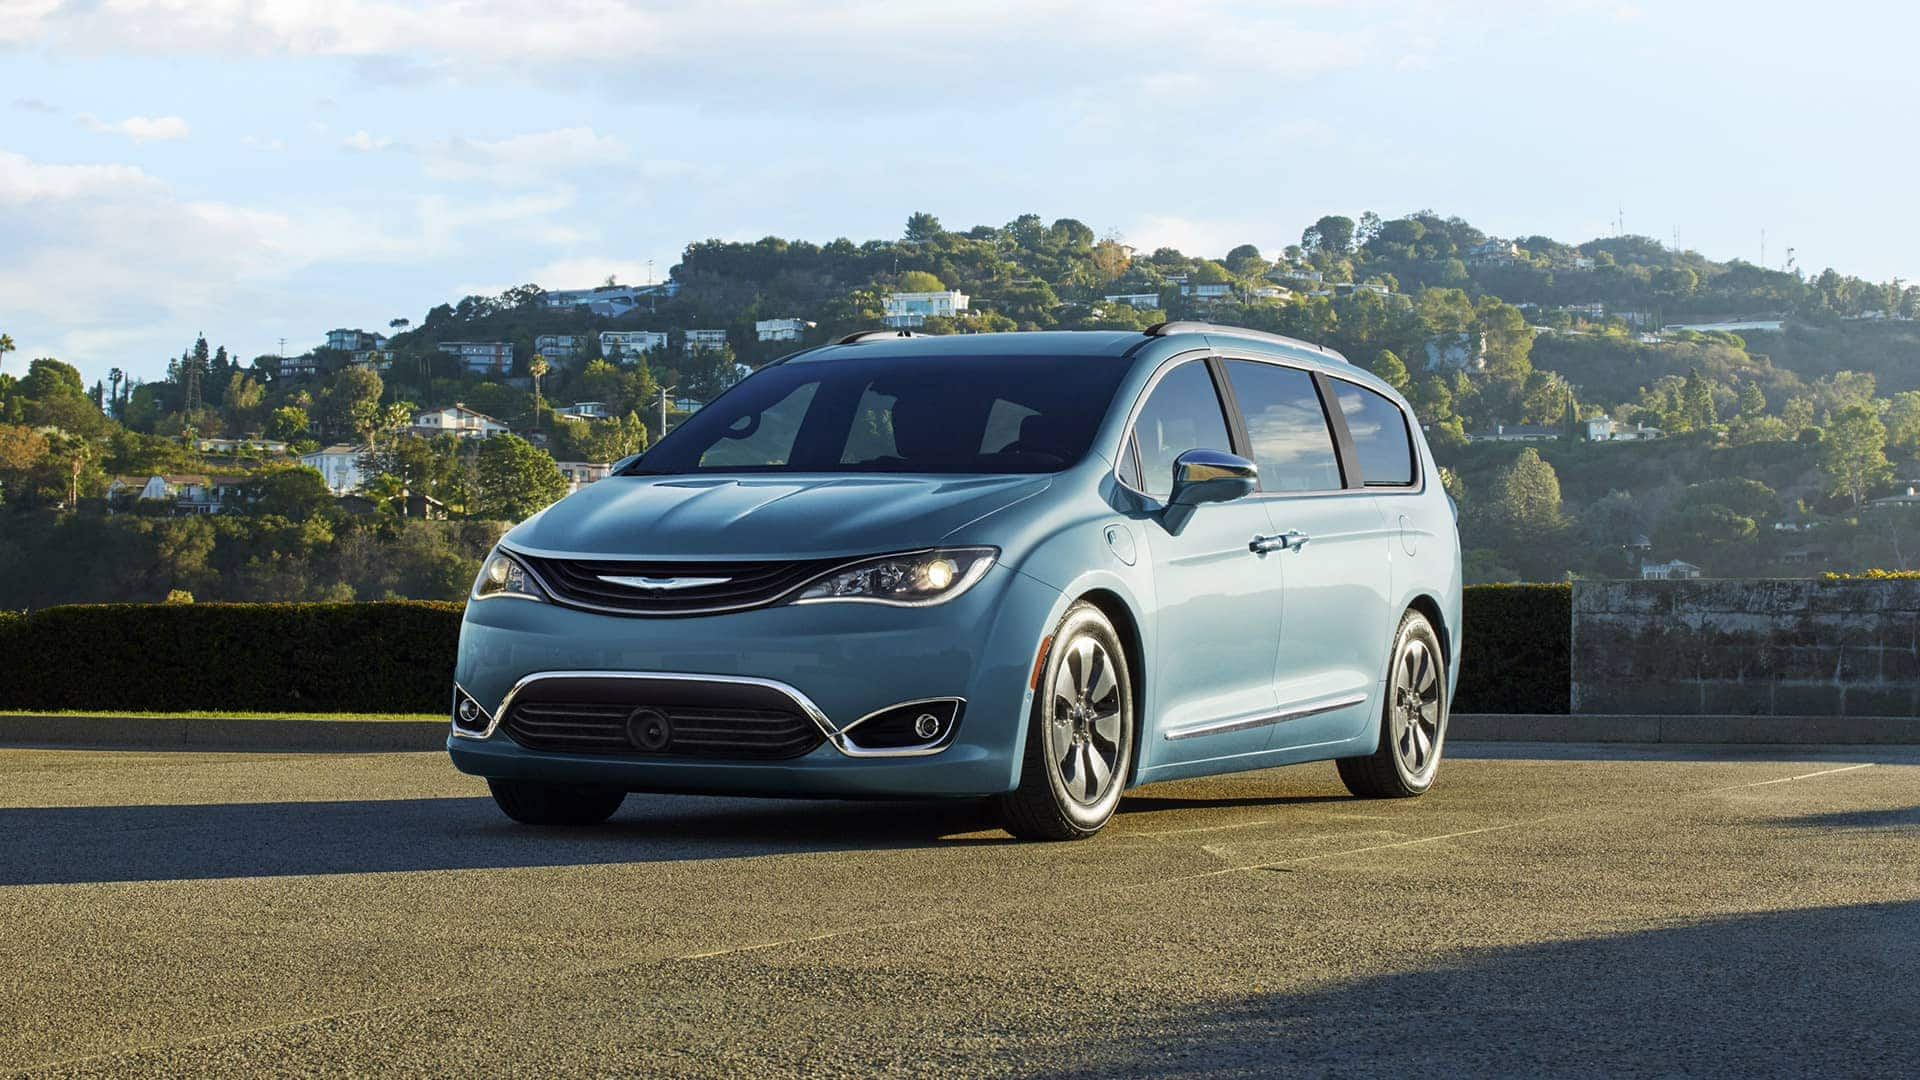 new 2017 chrysler pacifica for sale near long island ny port jefferson ny lease or buy a new. Black Bedroom Furniture Sets. Home Design Ideas